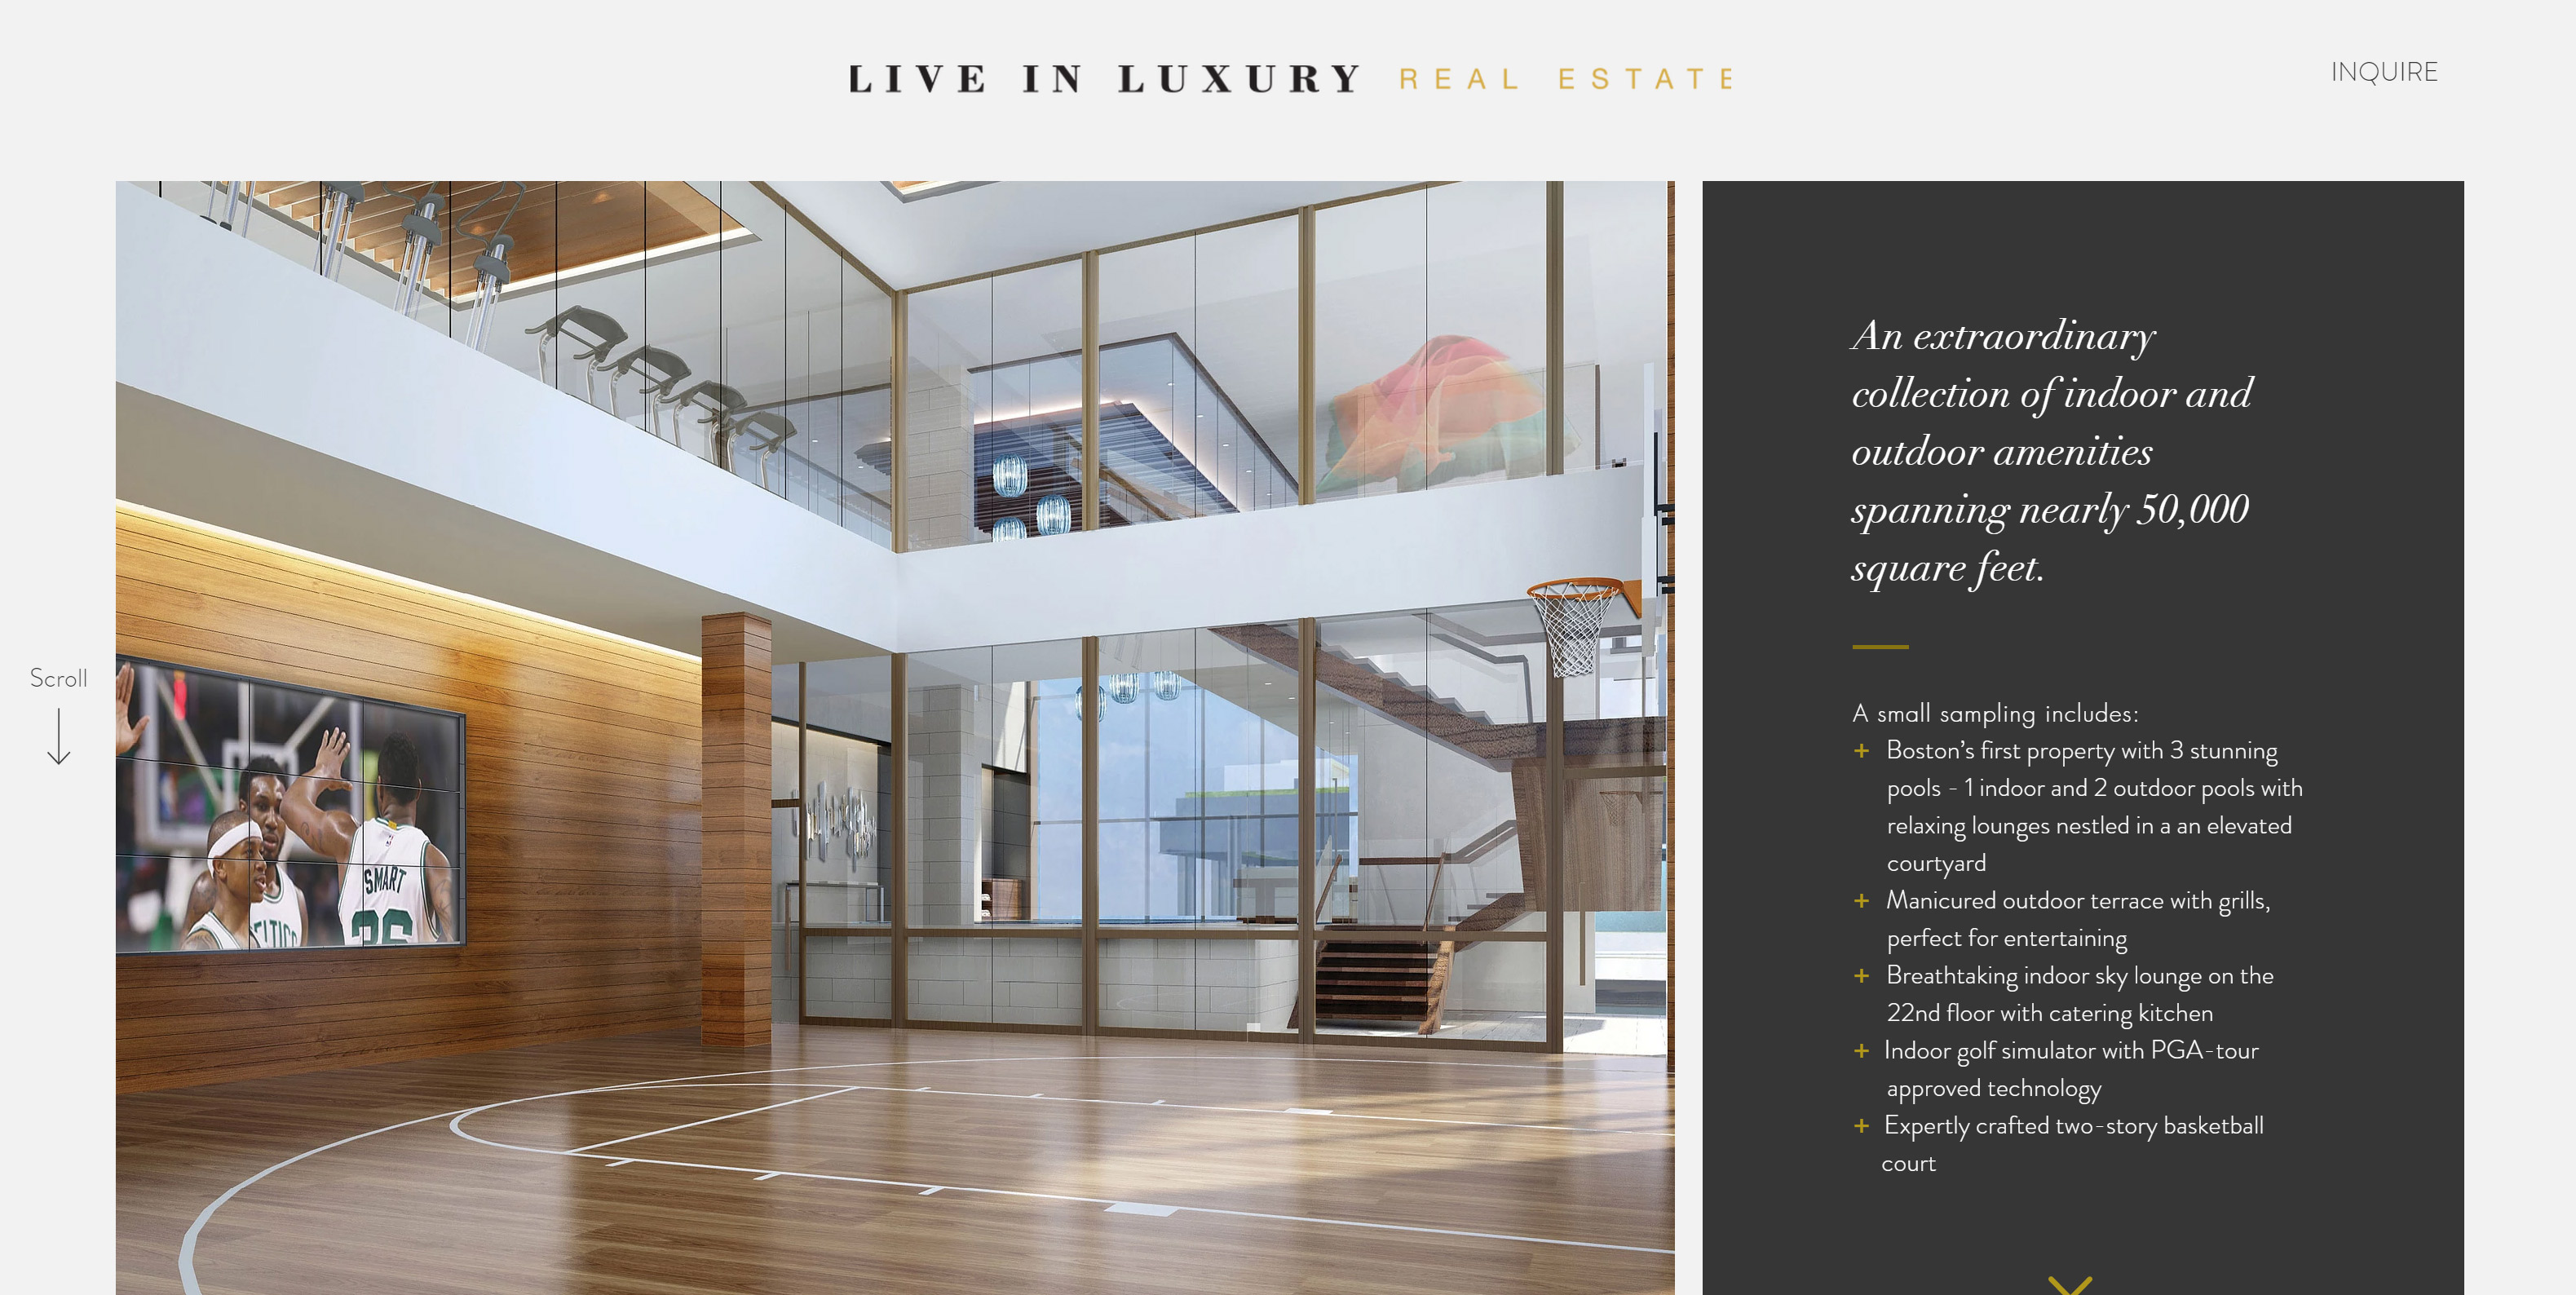 Sarah-Cas-Graphic-Design-Website-Design-Live-In-Luxury-Real-Estate-Echelon-Seaport-Boston-5